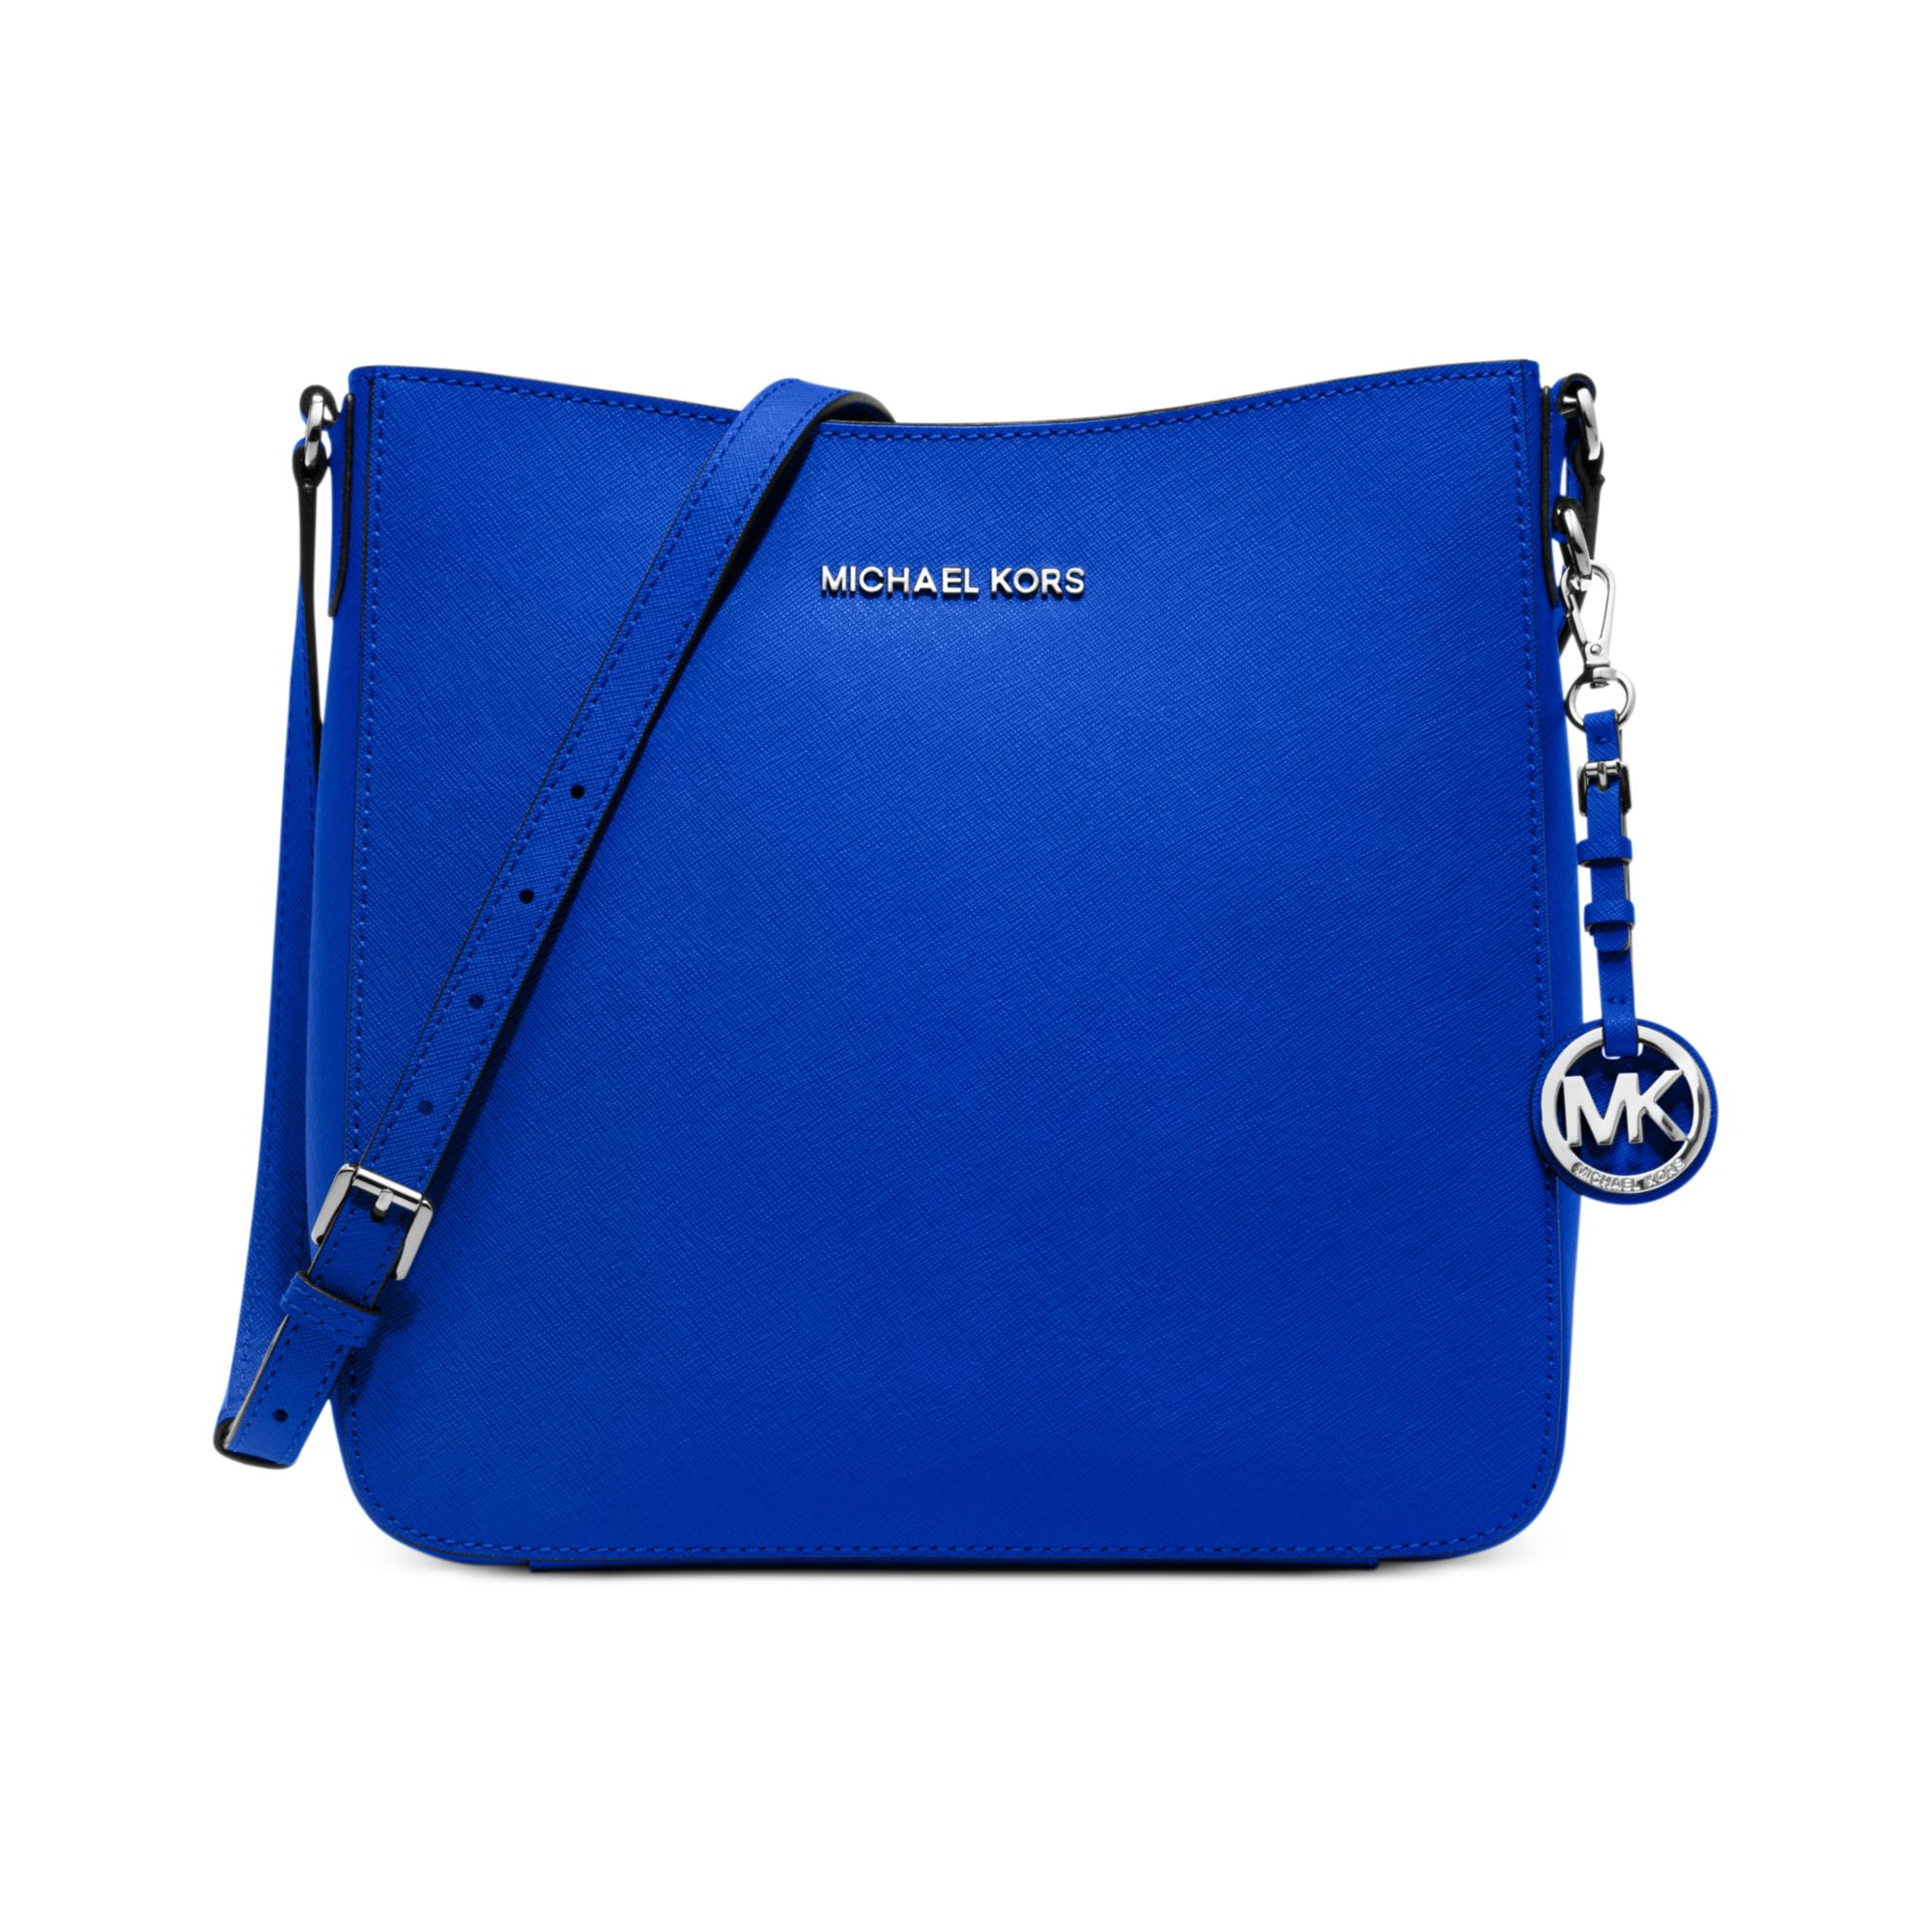 ... buy lyst michael kors jet set travel large saffiano messenger bag in  blue 685ee 3514c c3b440d6601c7